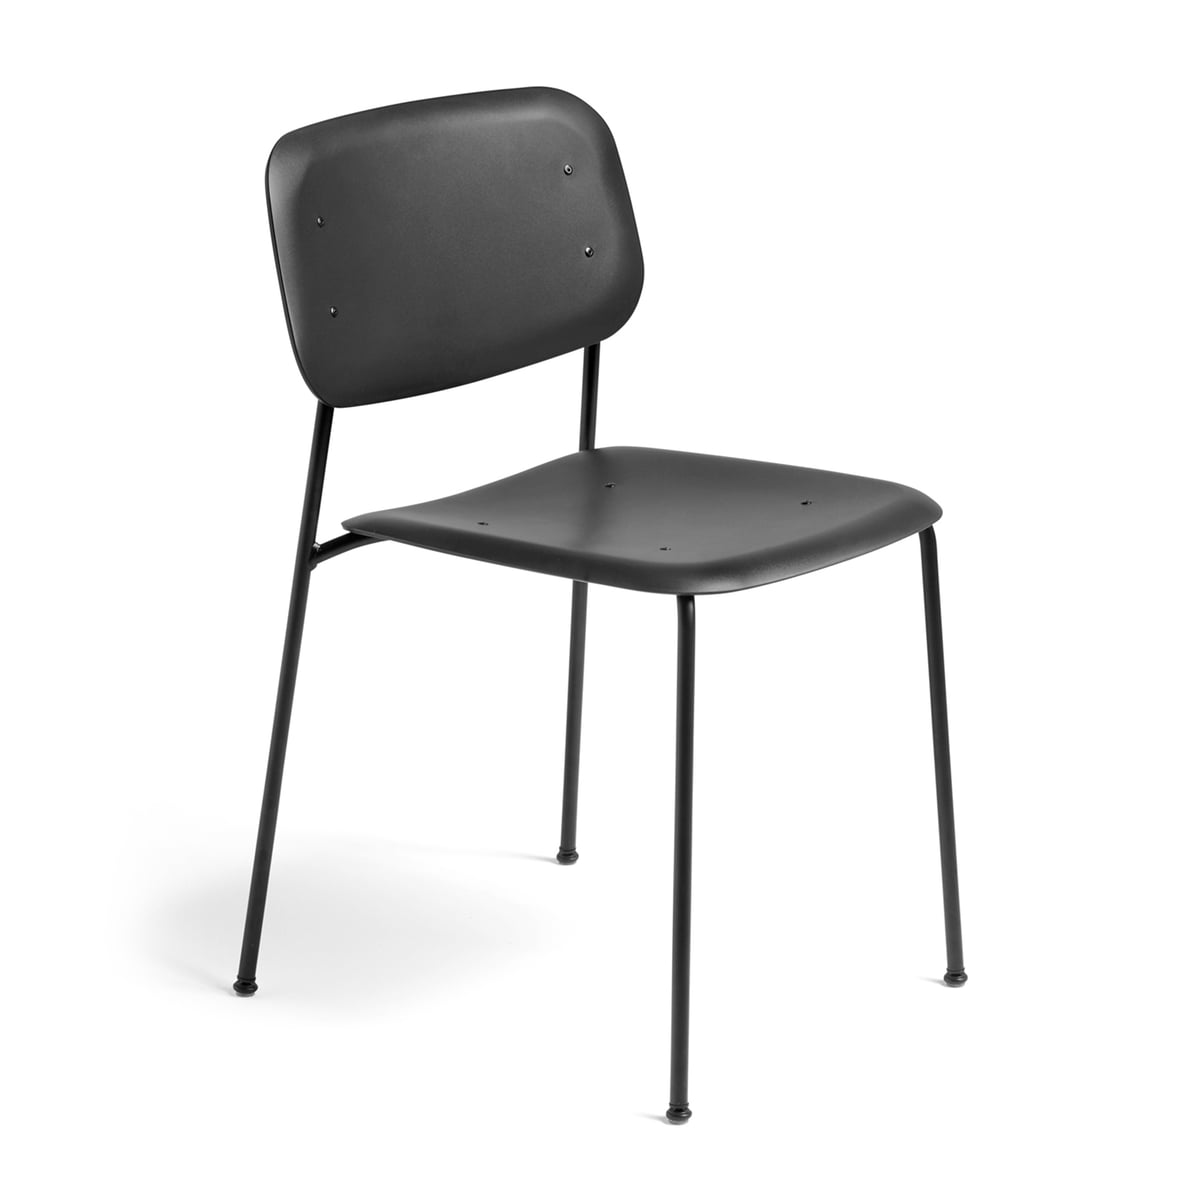 soft edge p10 chair by hay connox. Black Bedroom Furniture Sets. Home Design Ideas